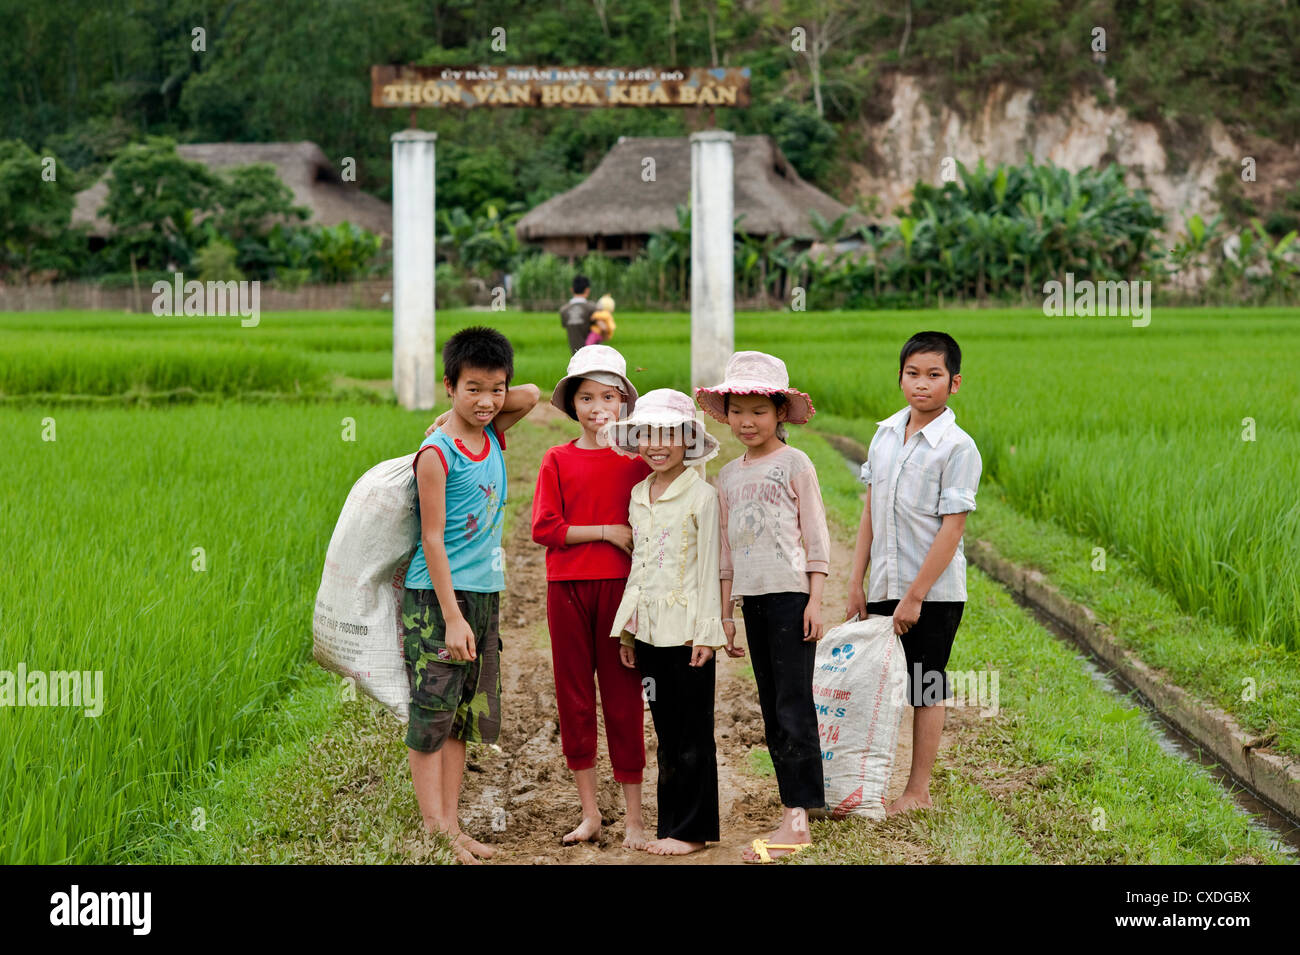 Group of children in a village in North Vietnam surrounded by rice paddy fields - Stock Image